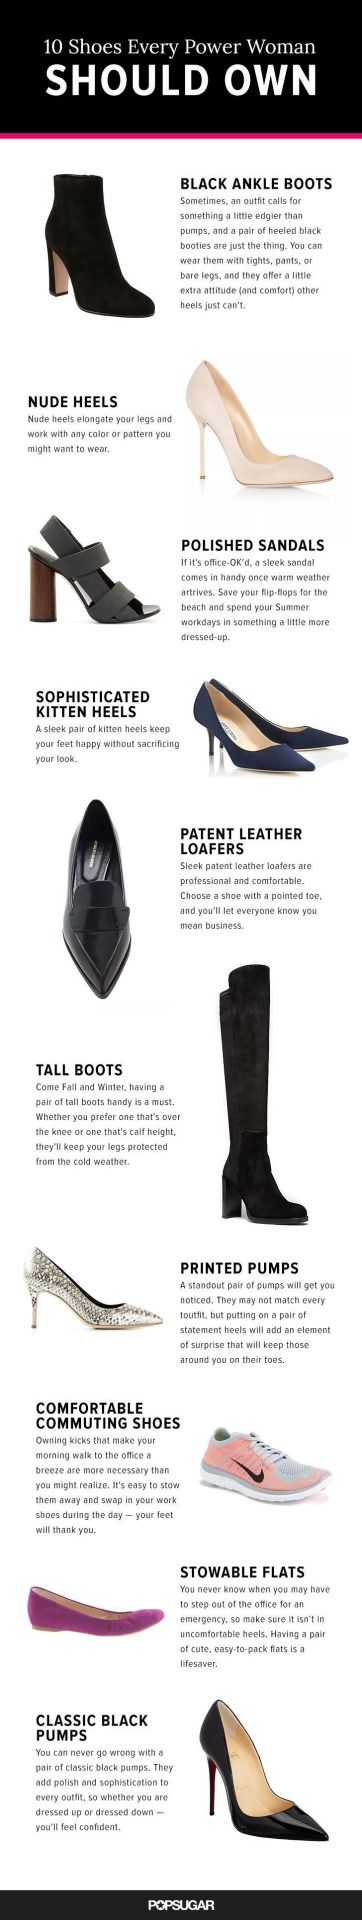 Tendance Chaussures  The 10 Shoes Every Power Woman Should Own  Tendance & idée Chaussures Femme 2016/2017 Description These 10 pairs are the essentials in your work wardrobe: think everything from classic pumps to lust-worthy loafers.